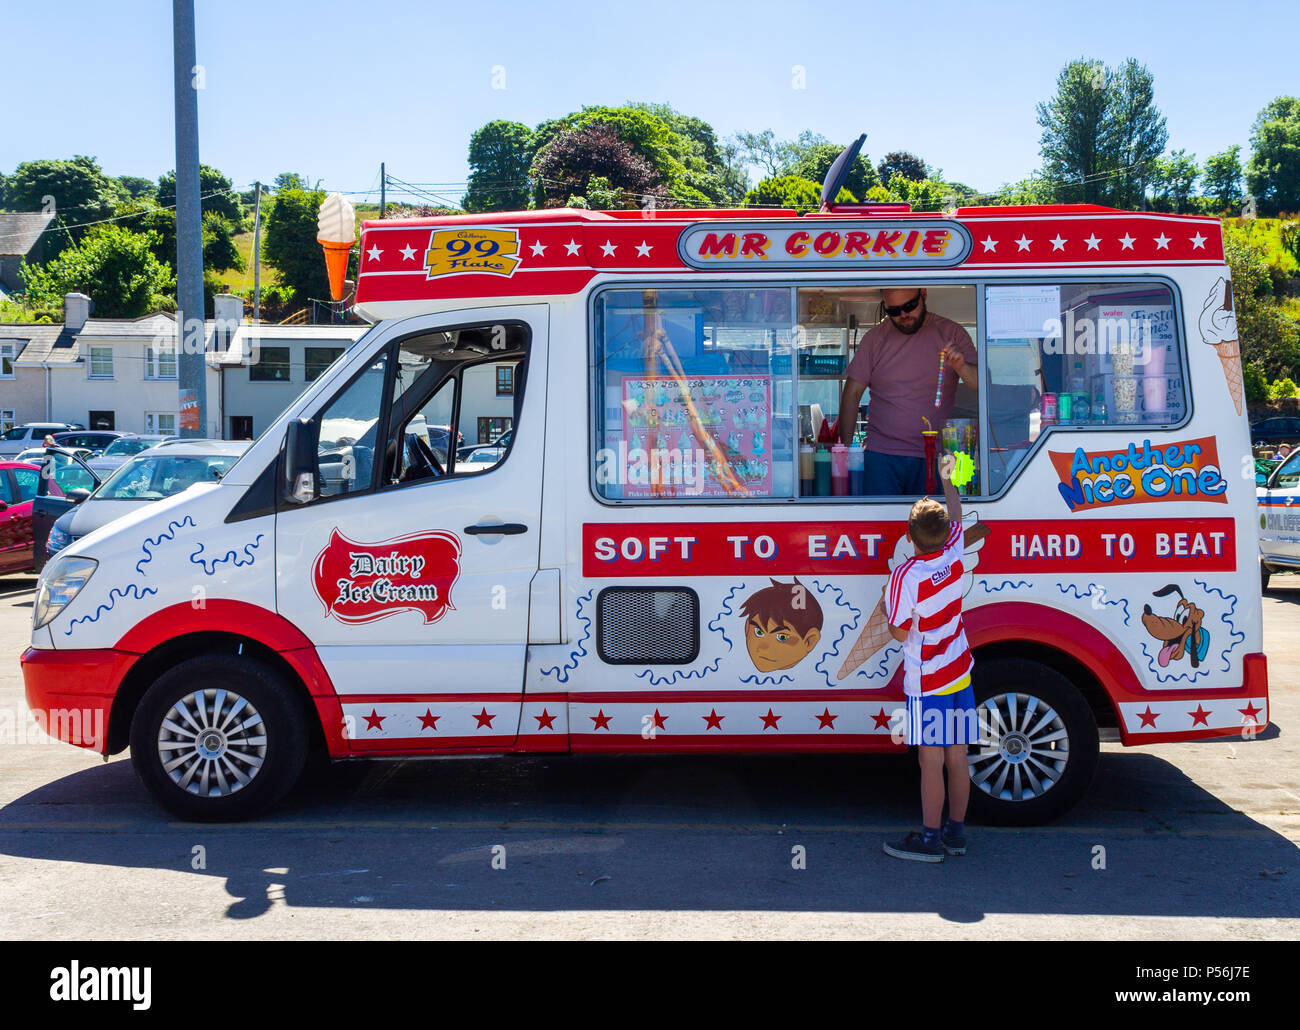 ice-cream-van-with-a-young-boy-buying-an-ice-cream-in-ireland-P56J7E.jpg